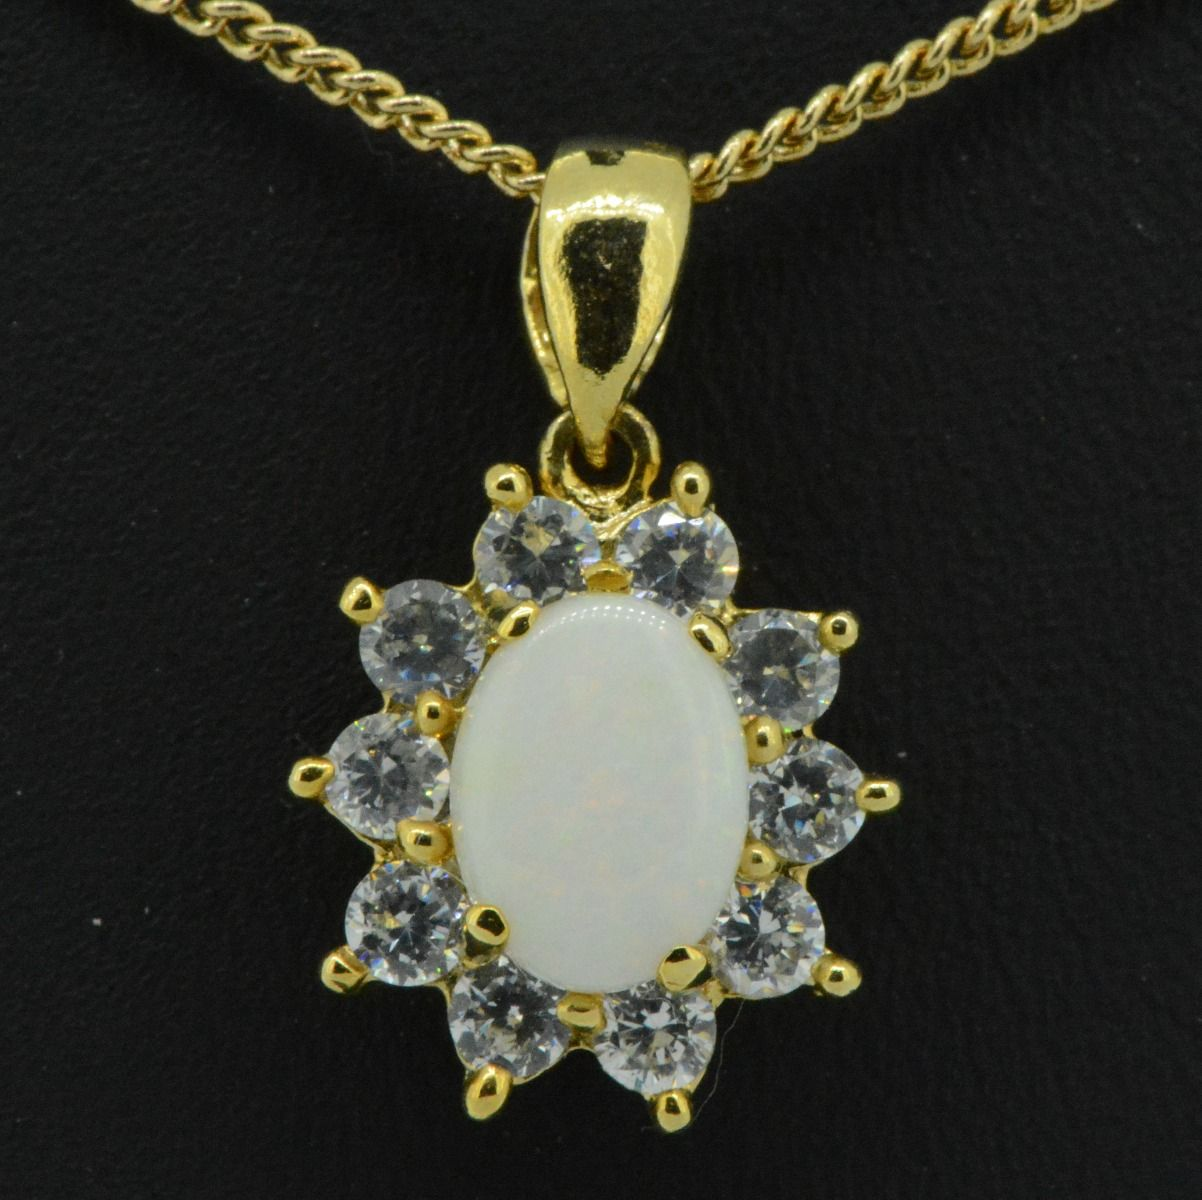 Gold plated solid opal pendant surrounded by cut crystrals